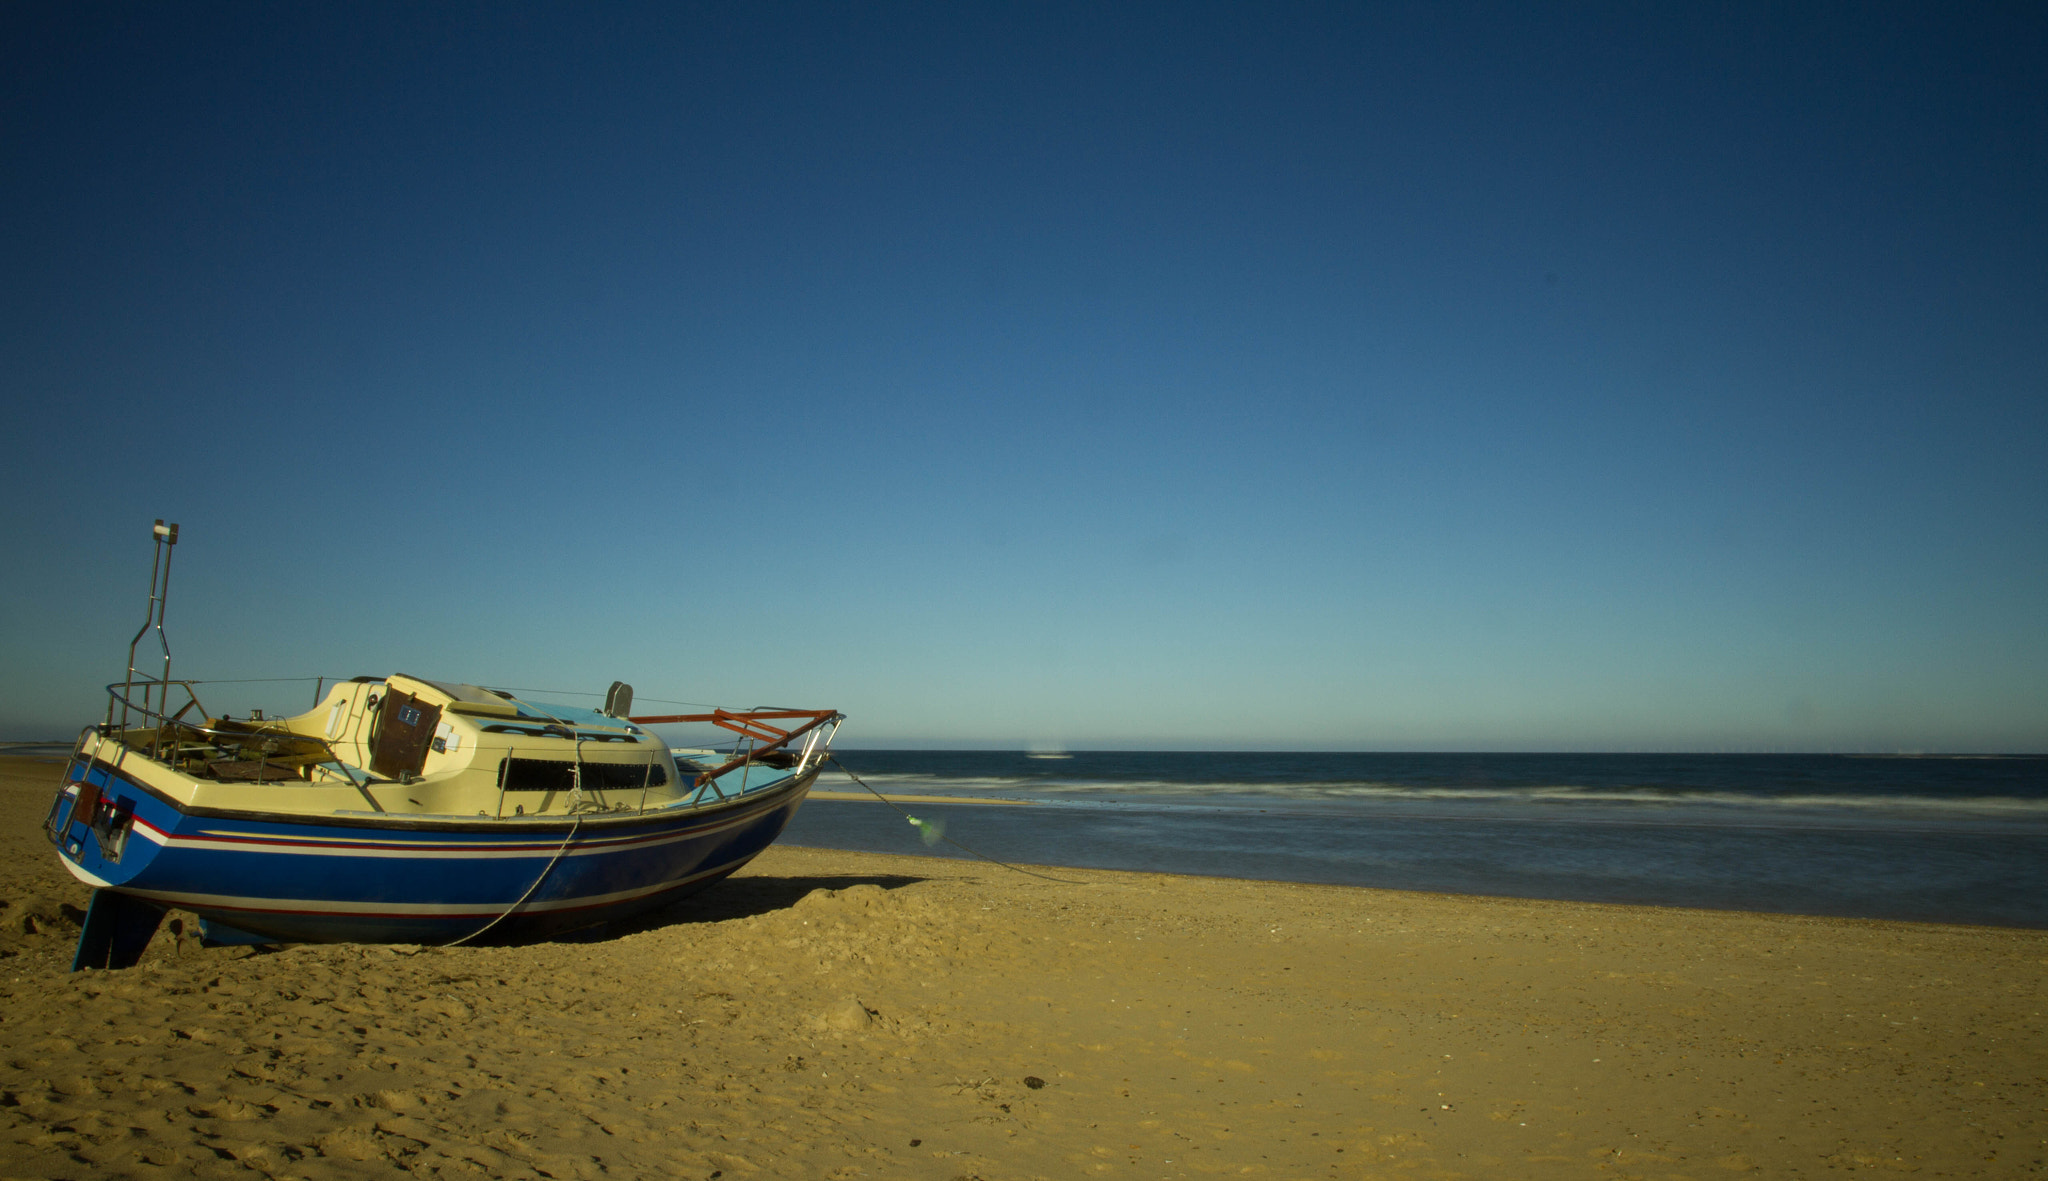 Photograph Beached Boat by Richard Youden on 500px